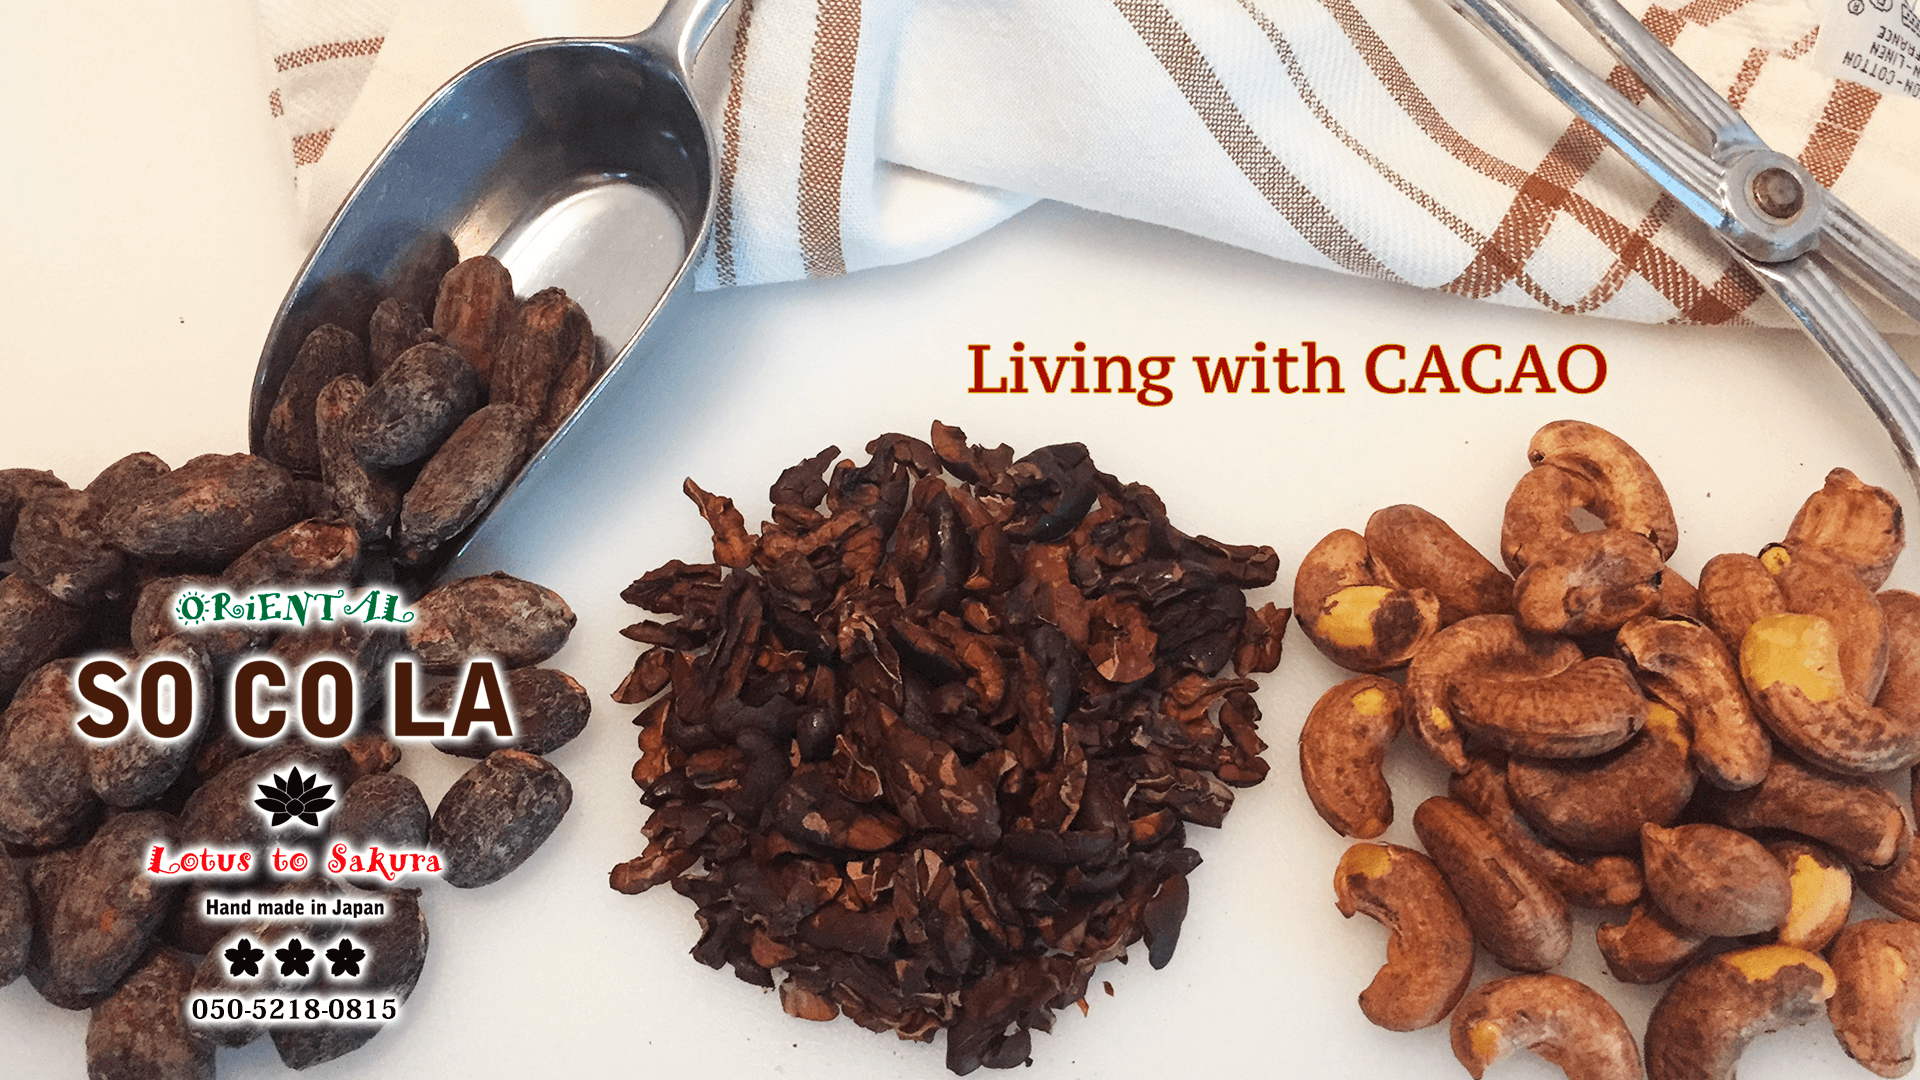 SOCOLA Lotus to Sakura Living in CACAO